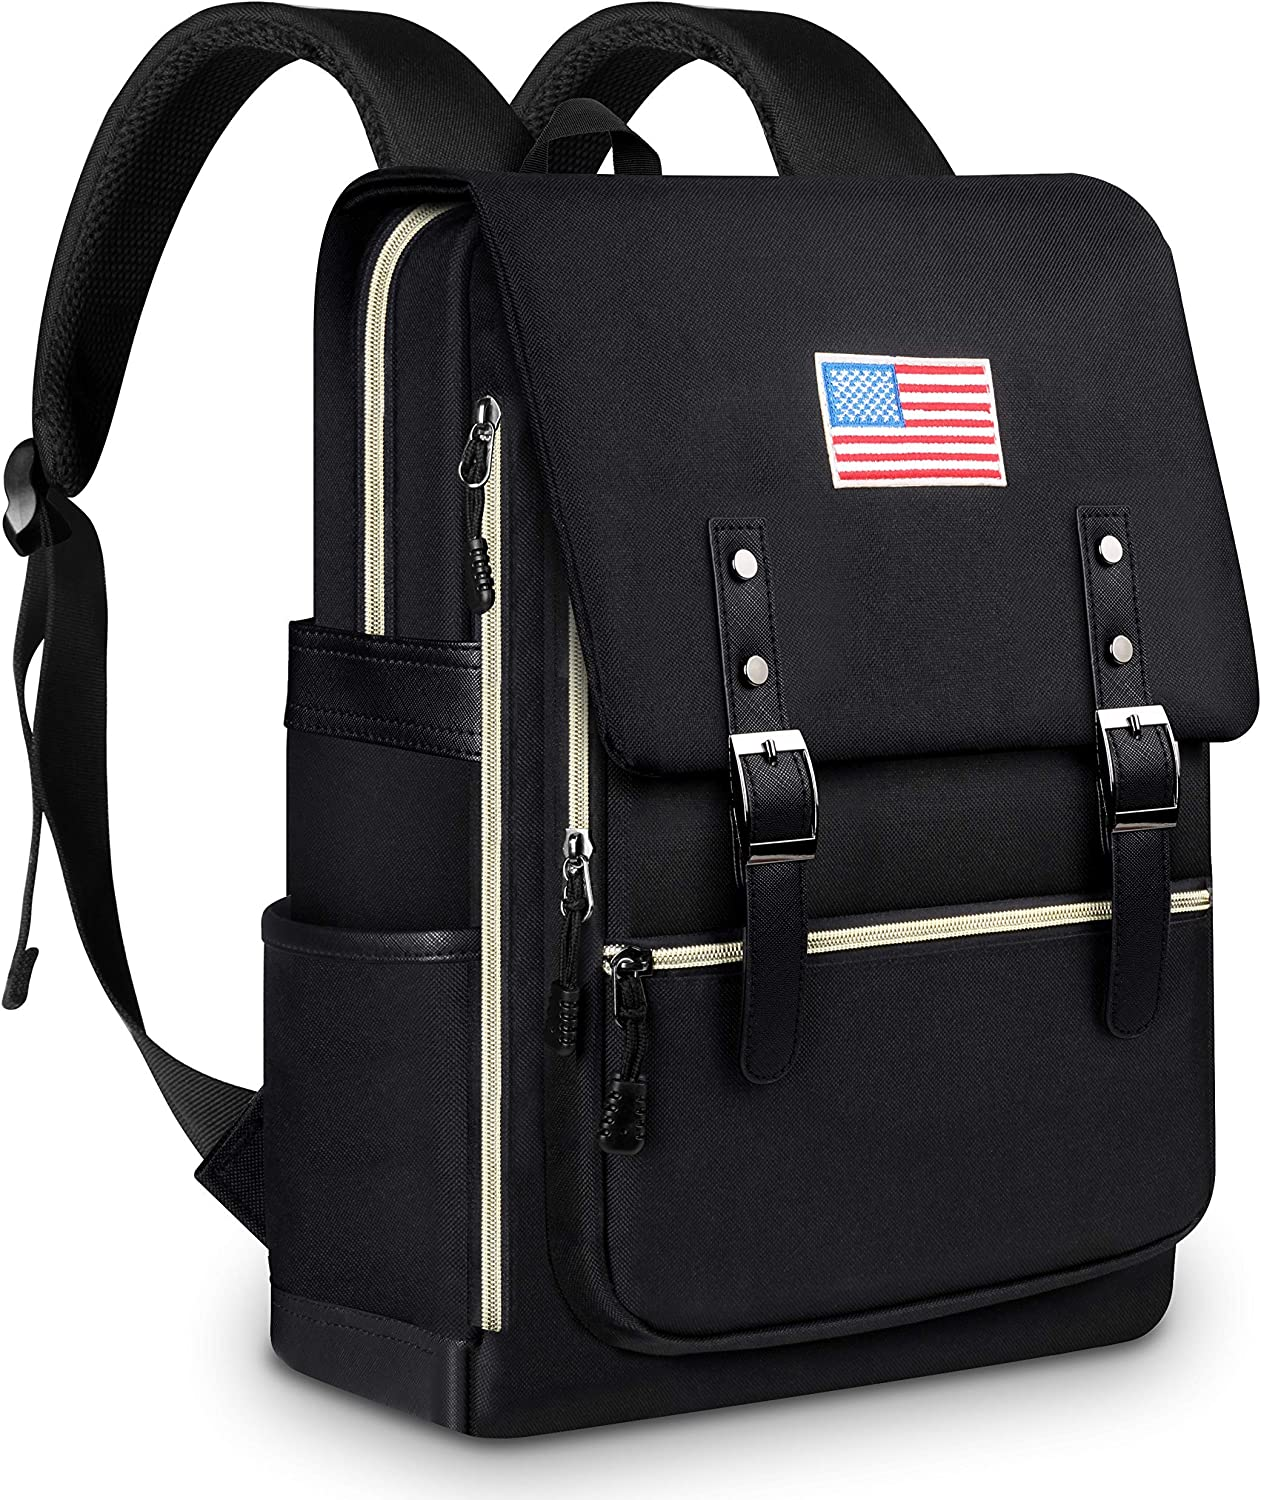 Updated Travel Laptop Backpack, Fashion College School Bookbag Fits up to 15.6 Inch Laptop